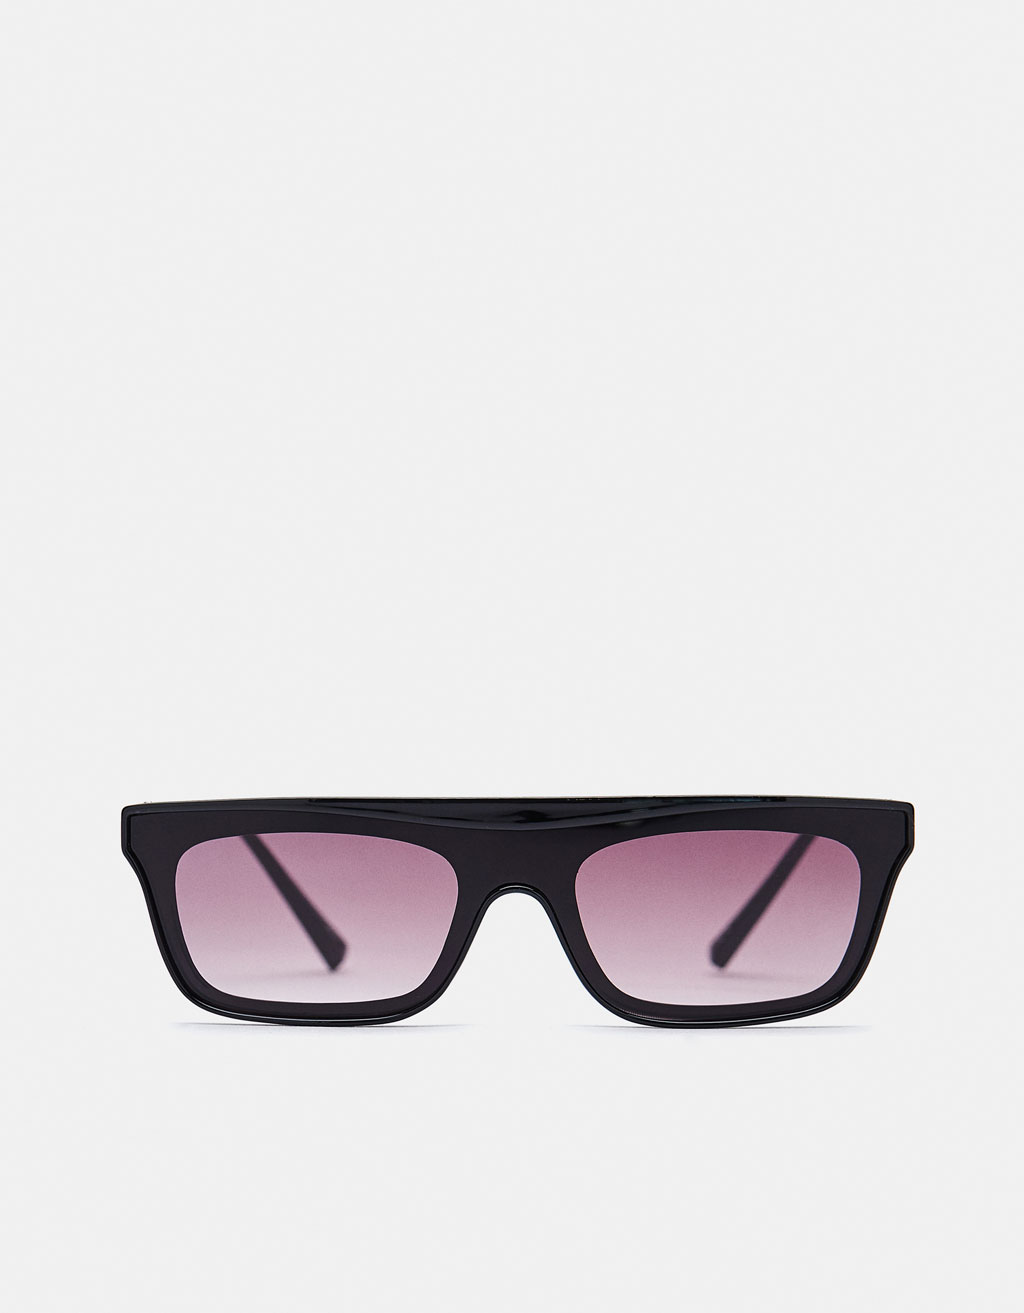 Glasses with metallic arms